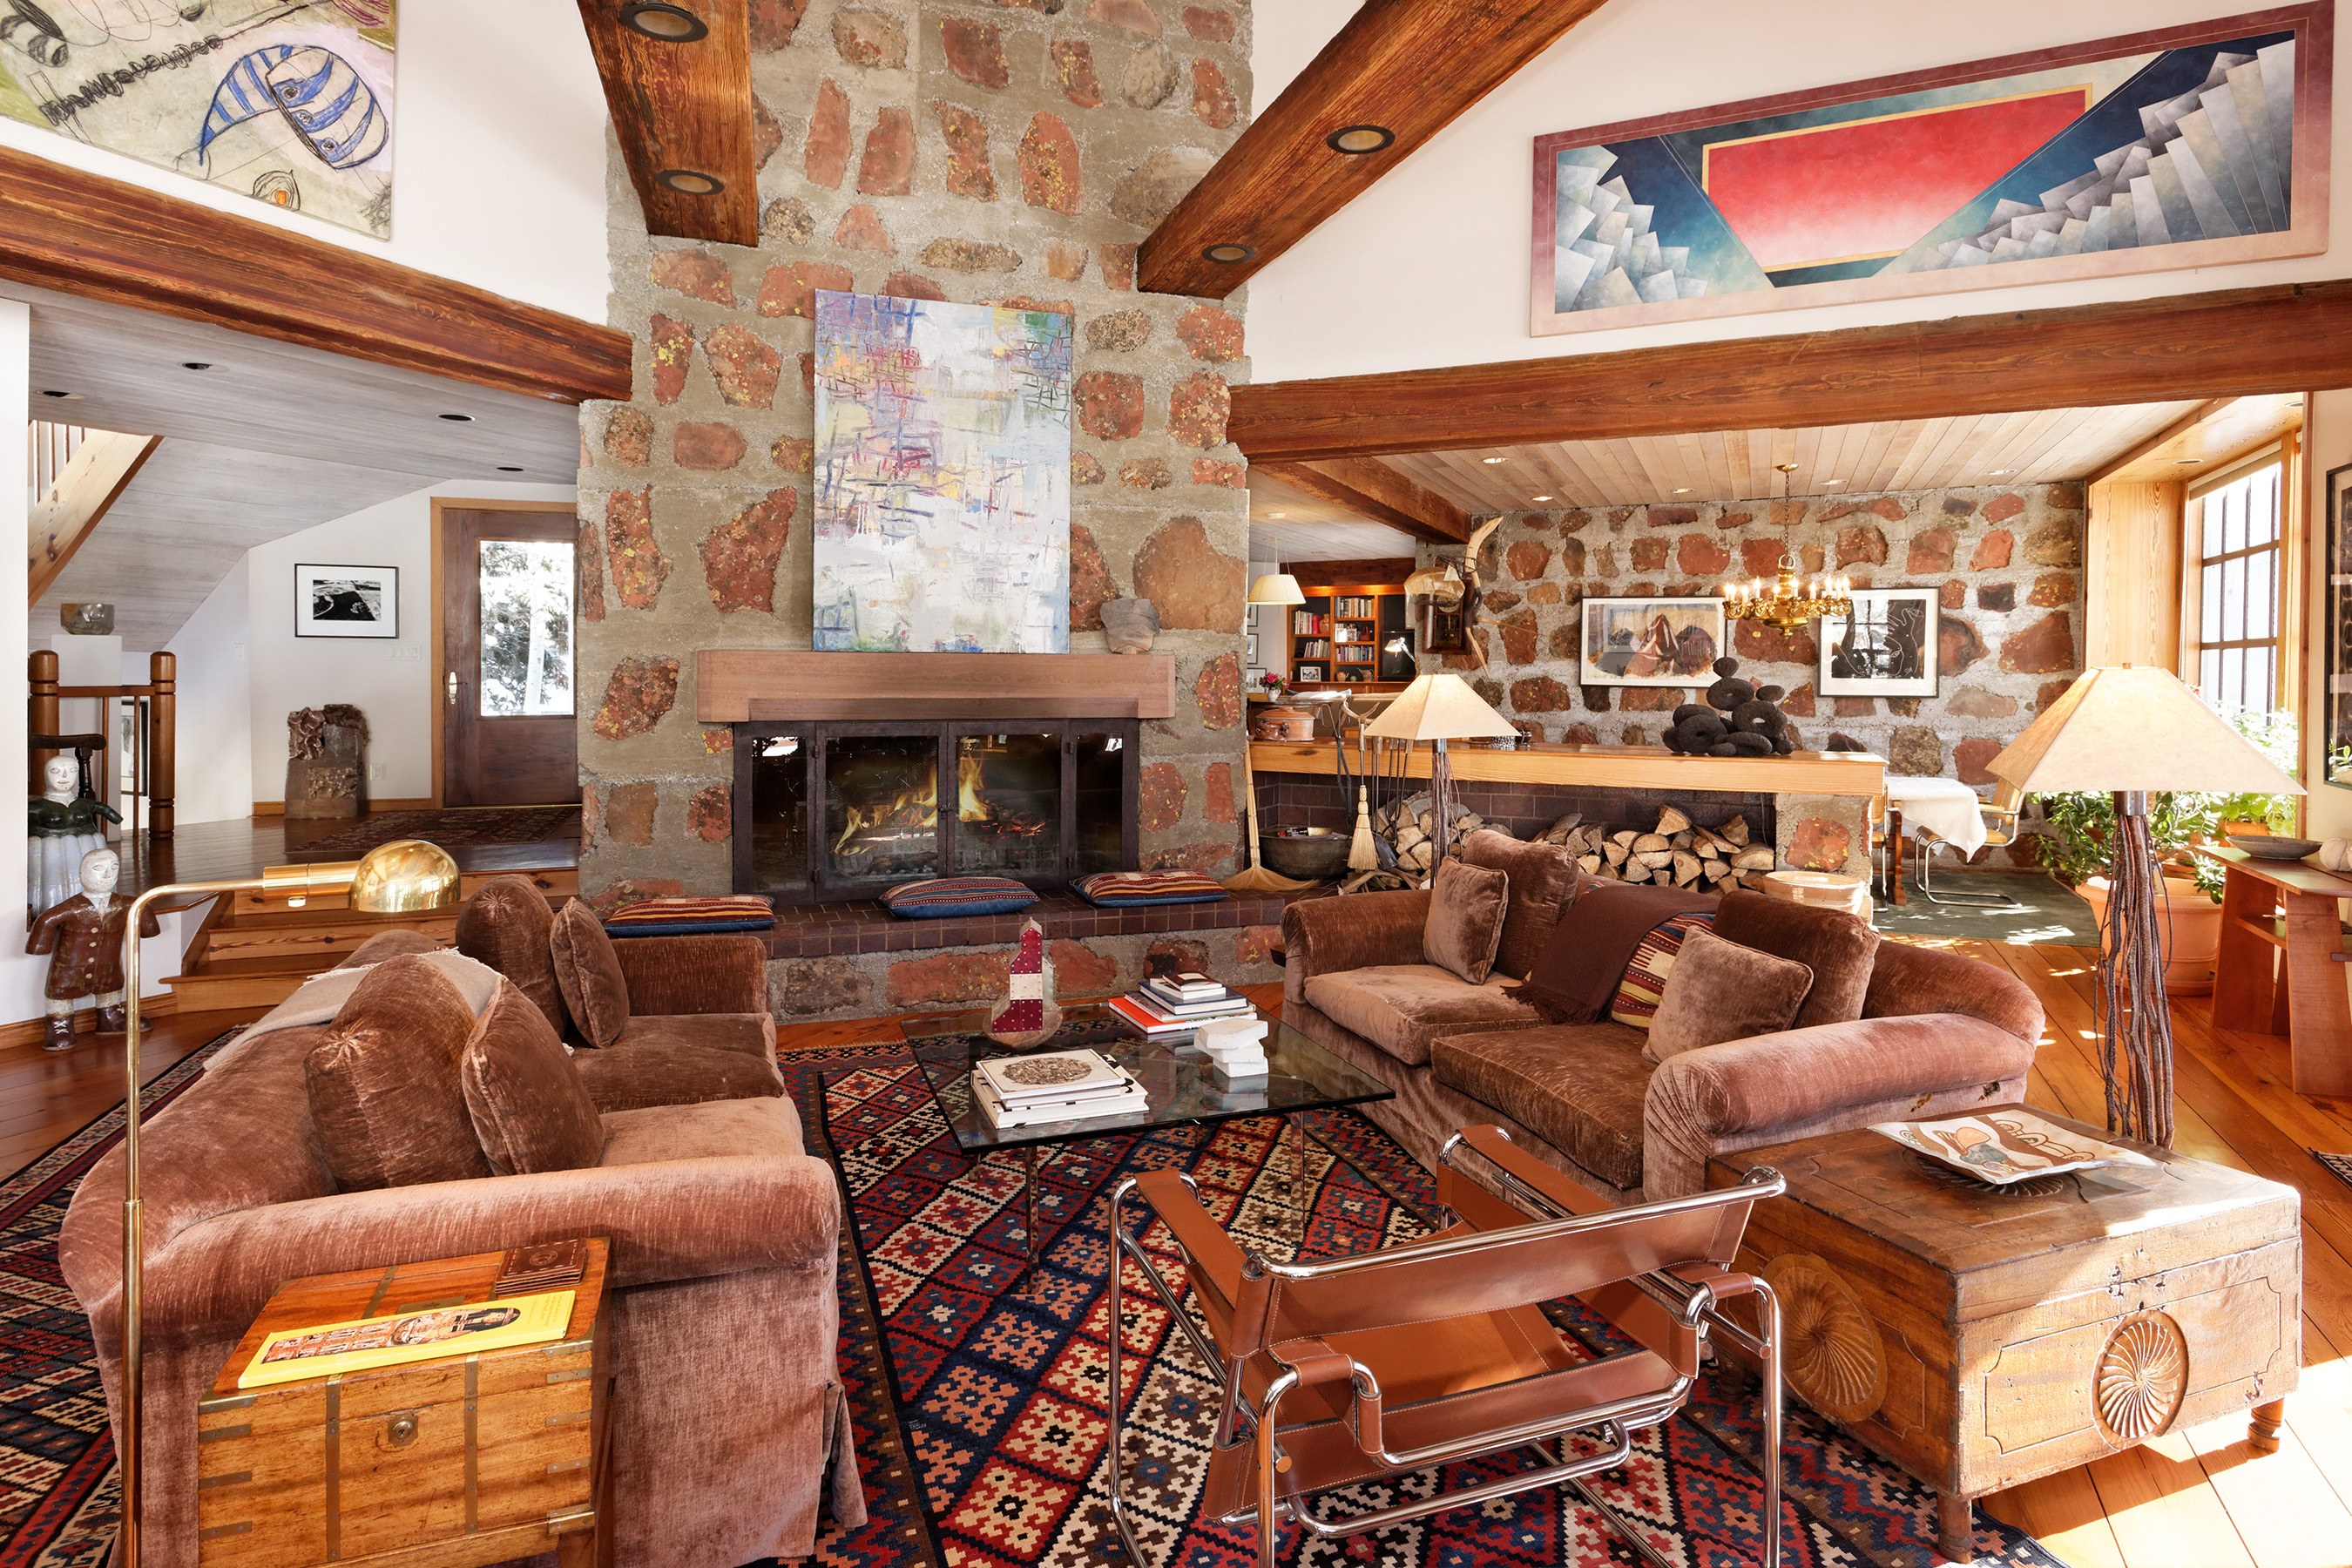 172 Deer Ridge Lane Snowmass Village Photo